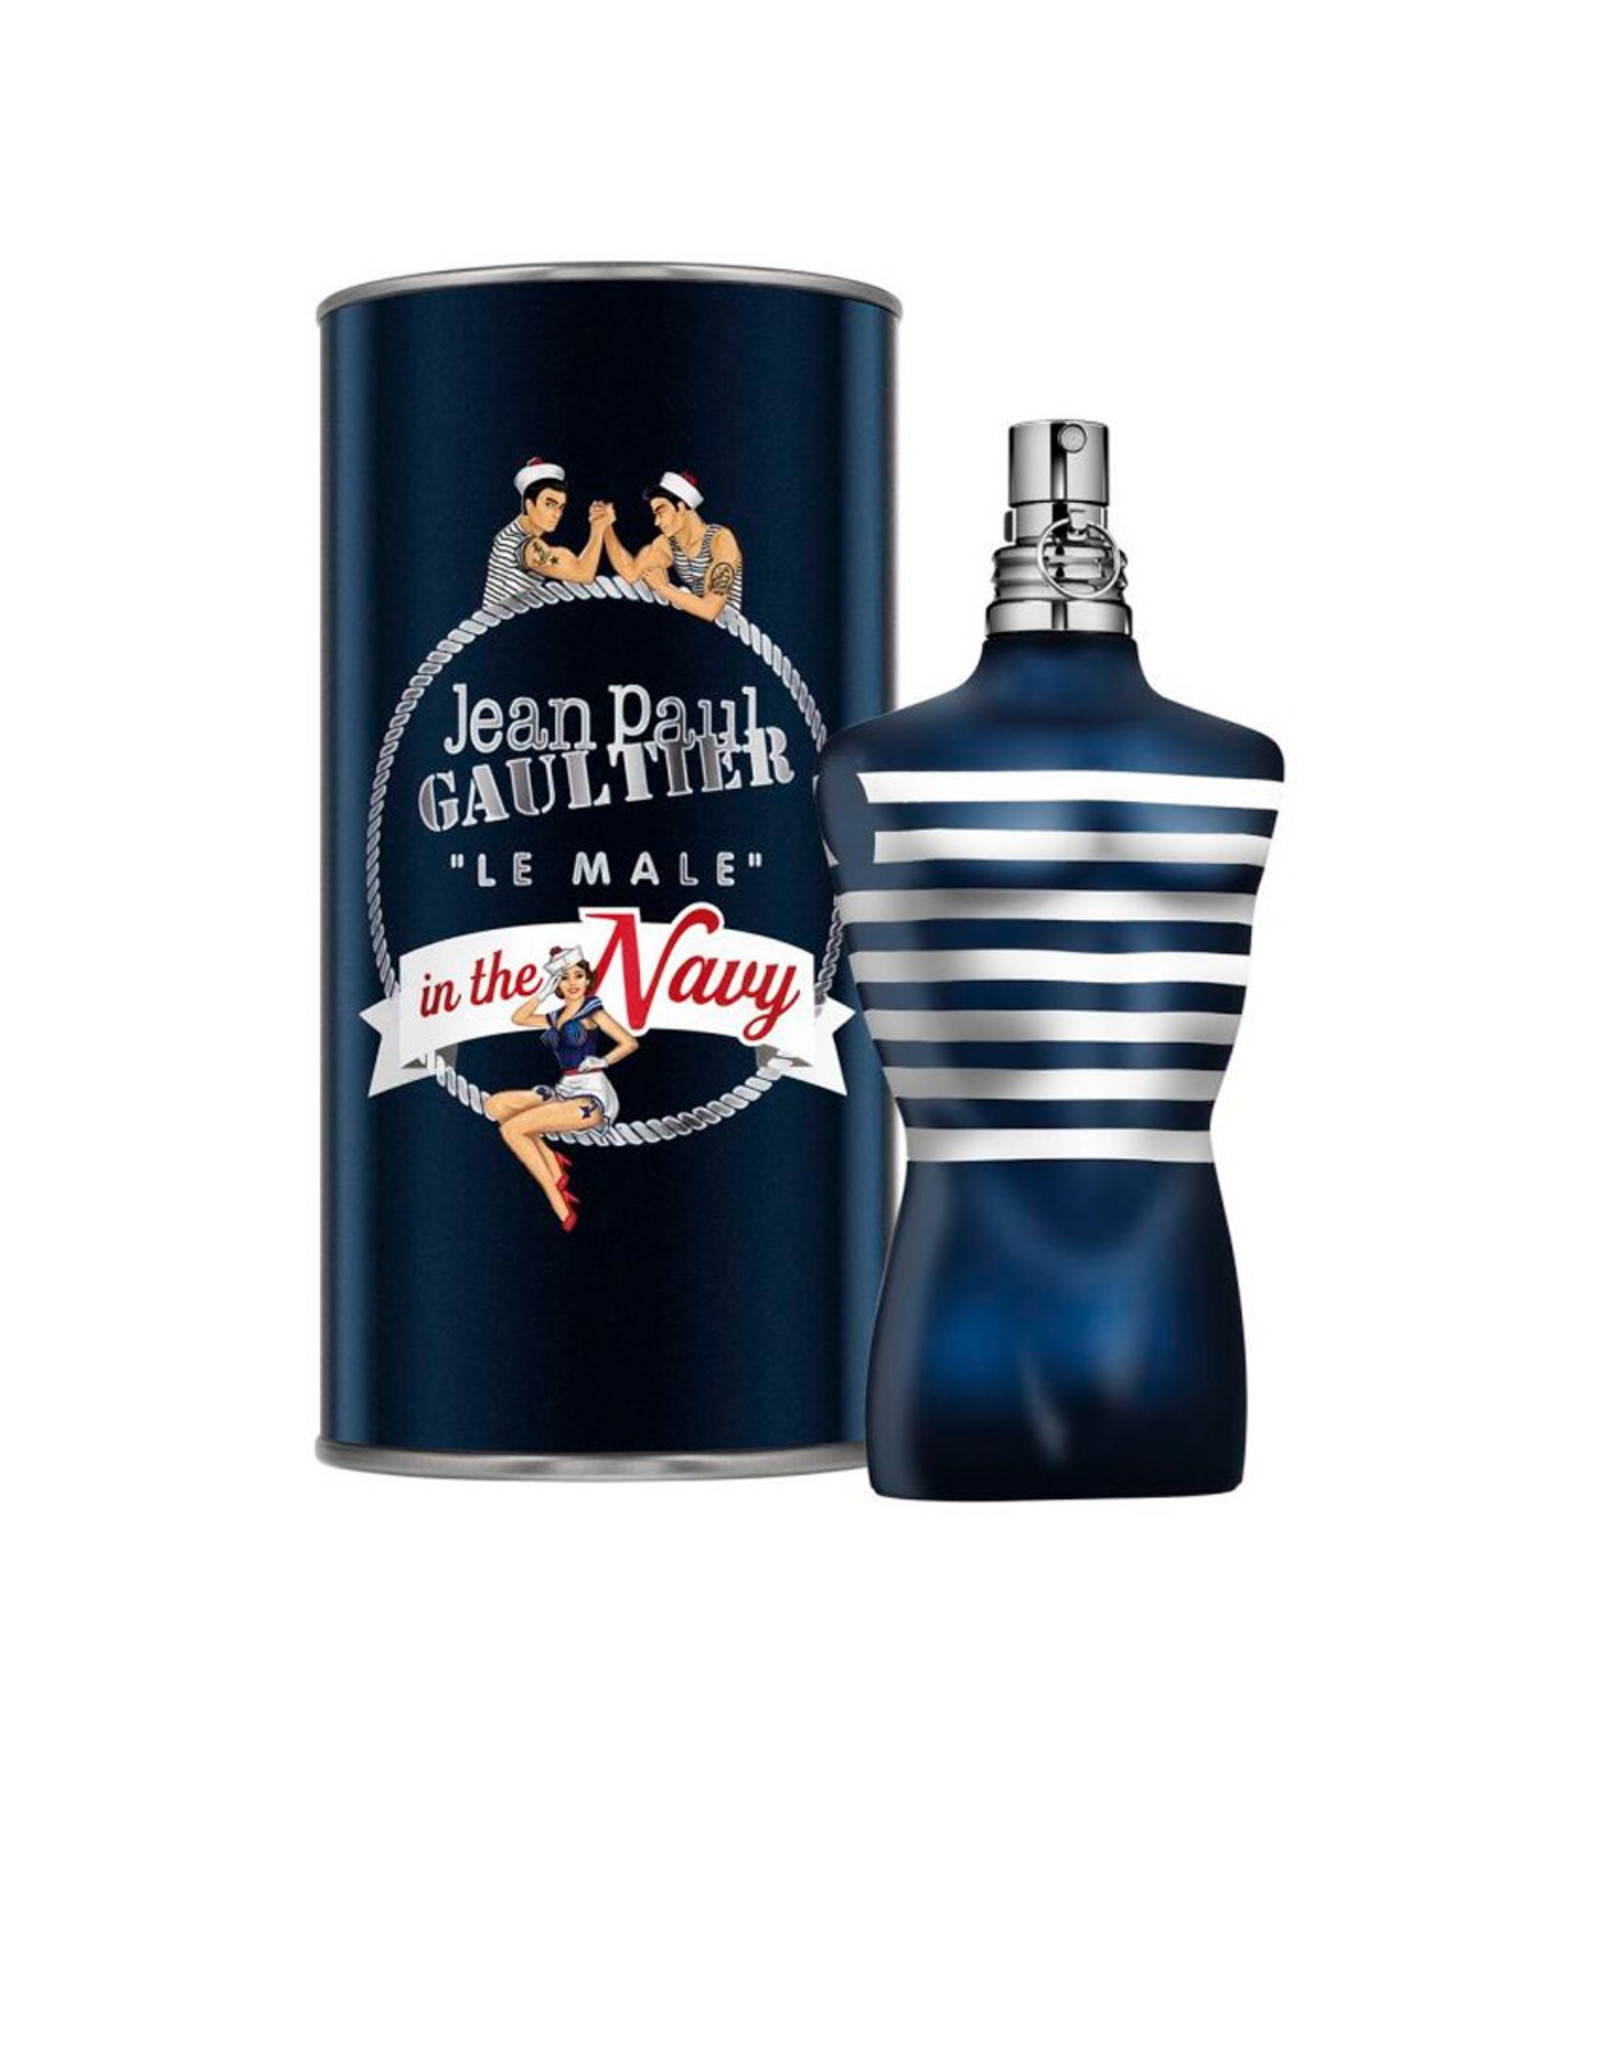 JEAN PAUL GAULTIER JEAN PAUL GAULTIER LE MALE IN THE NAVY